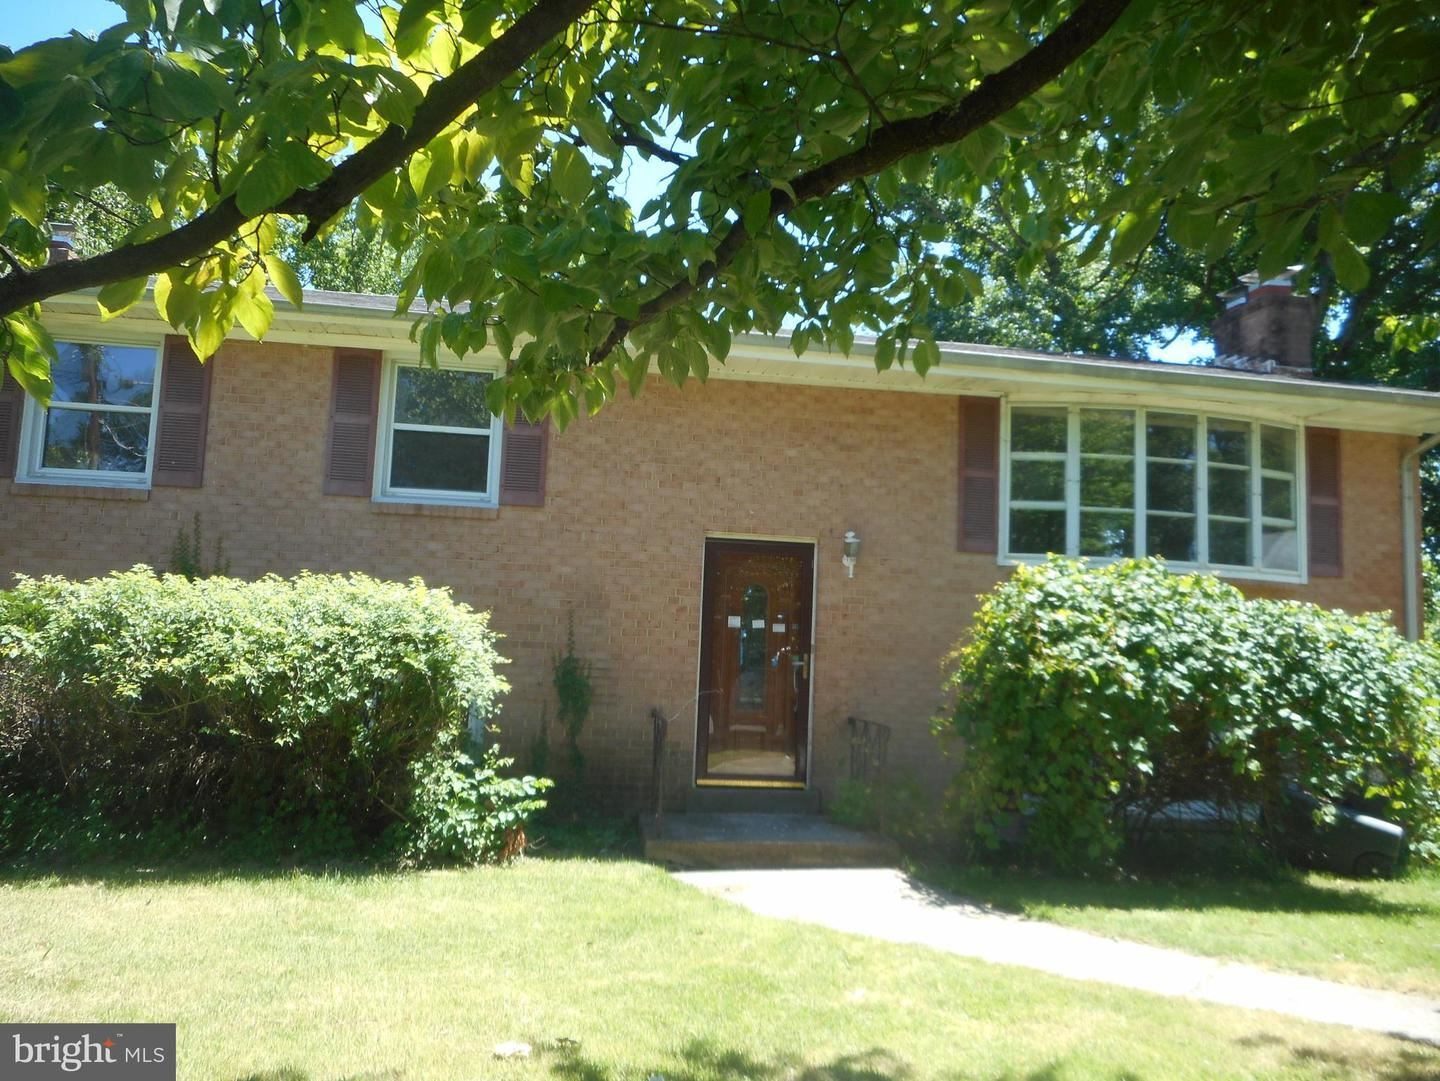 4703 PELHAM CT, Temple Hills, MD 20748 - #: MDPG553146